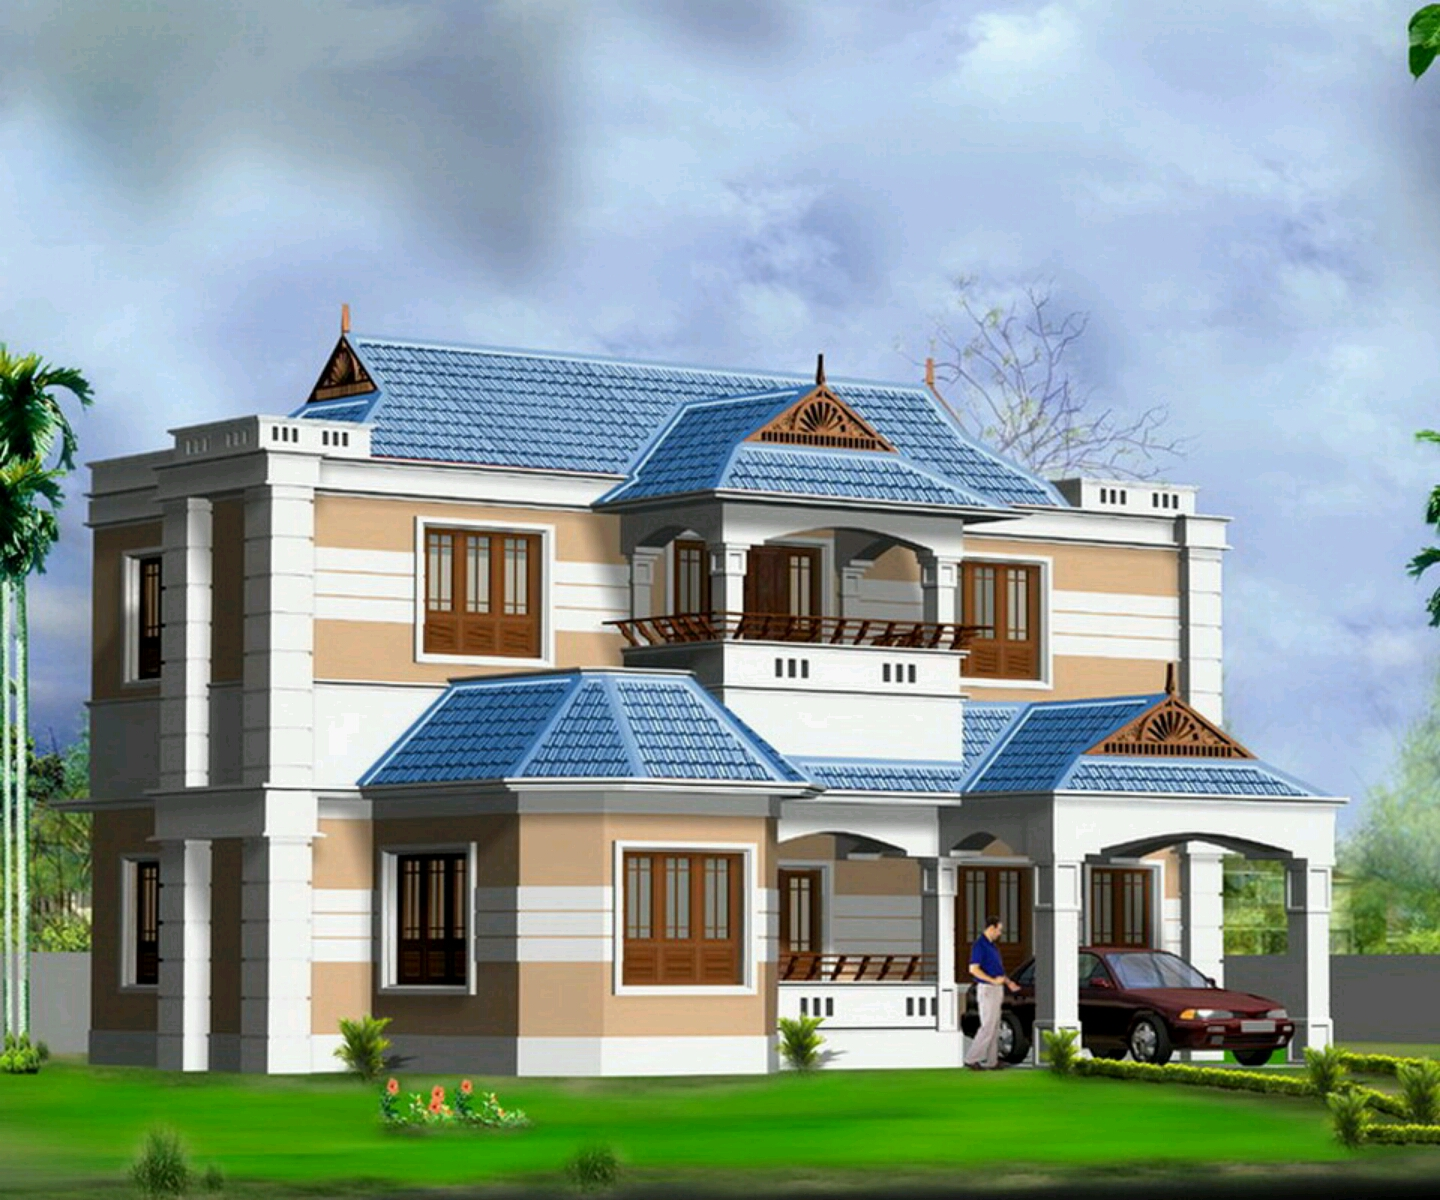 Homes designs star dreams homes for Home design pictures